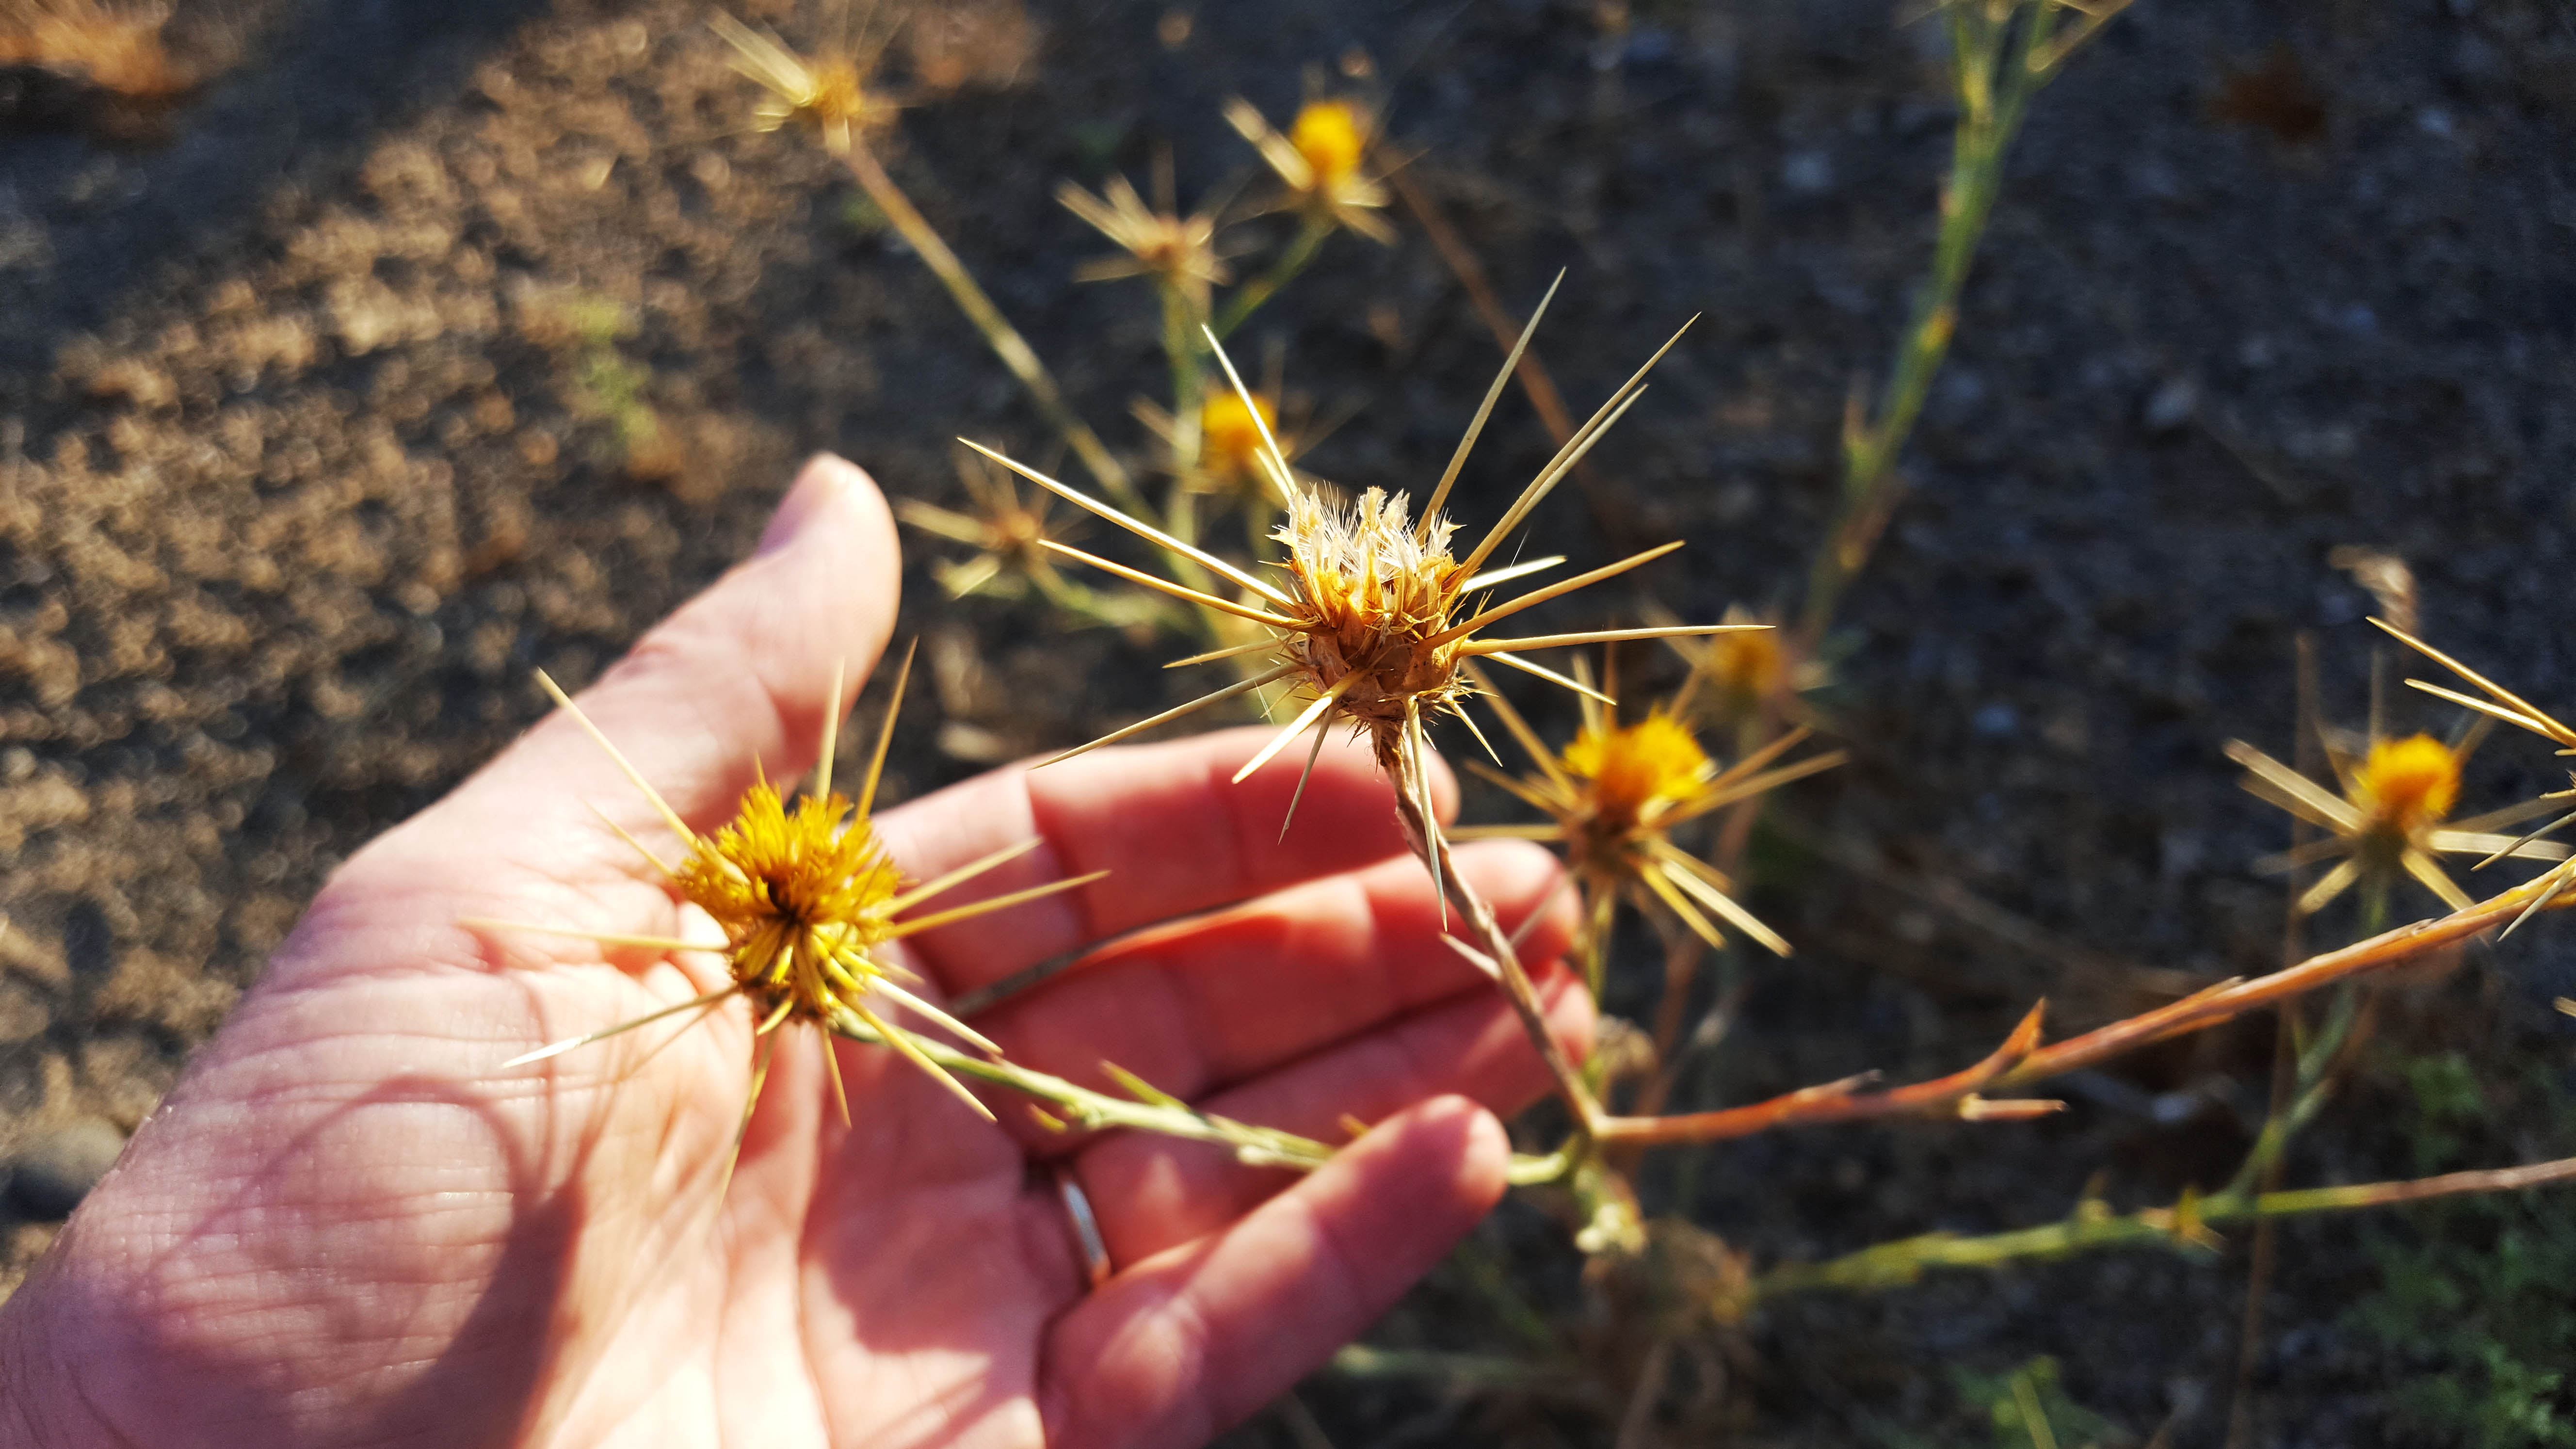 Yellow Starthistle, a Noxious Weed You Need to Control